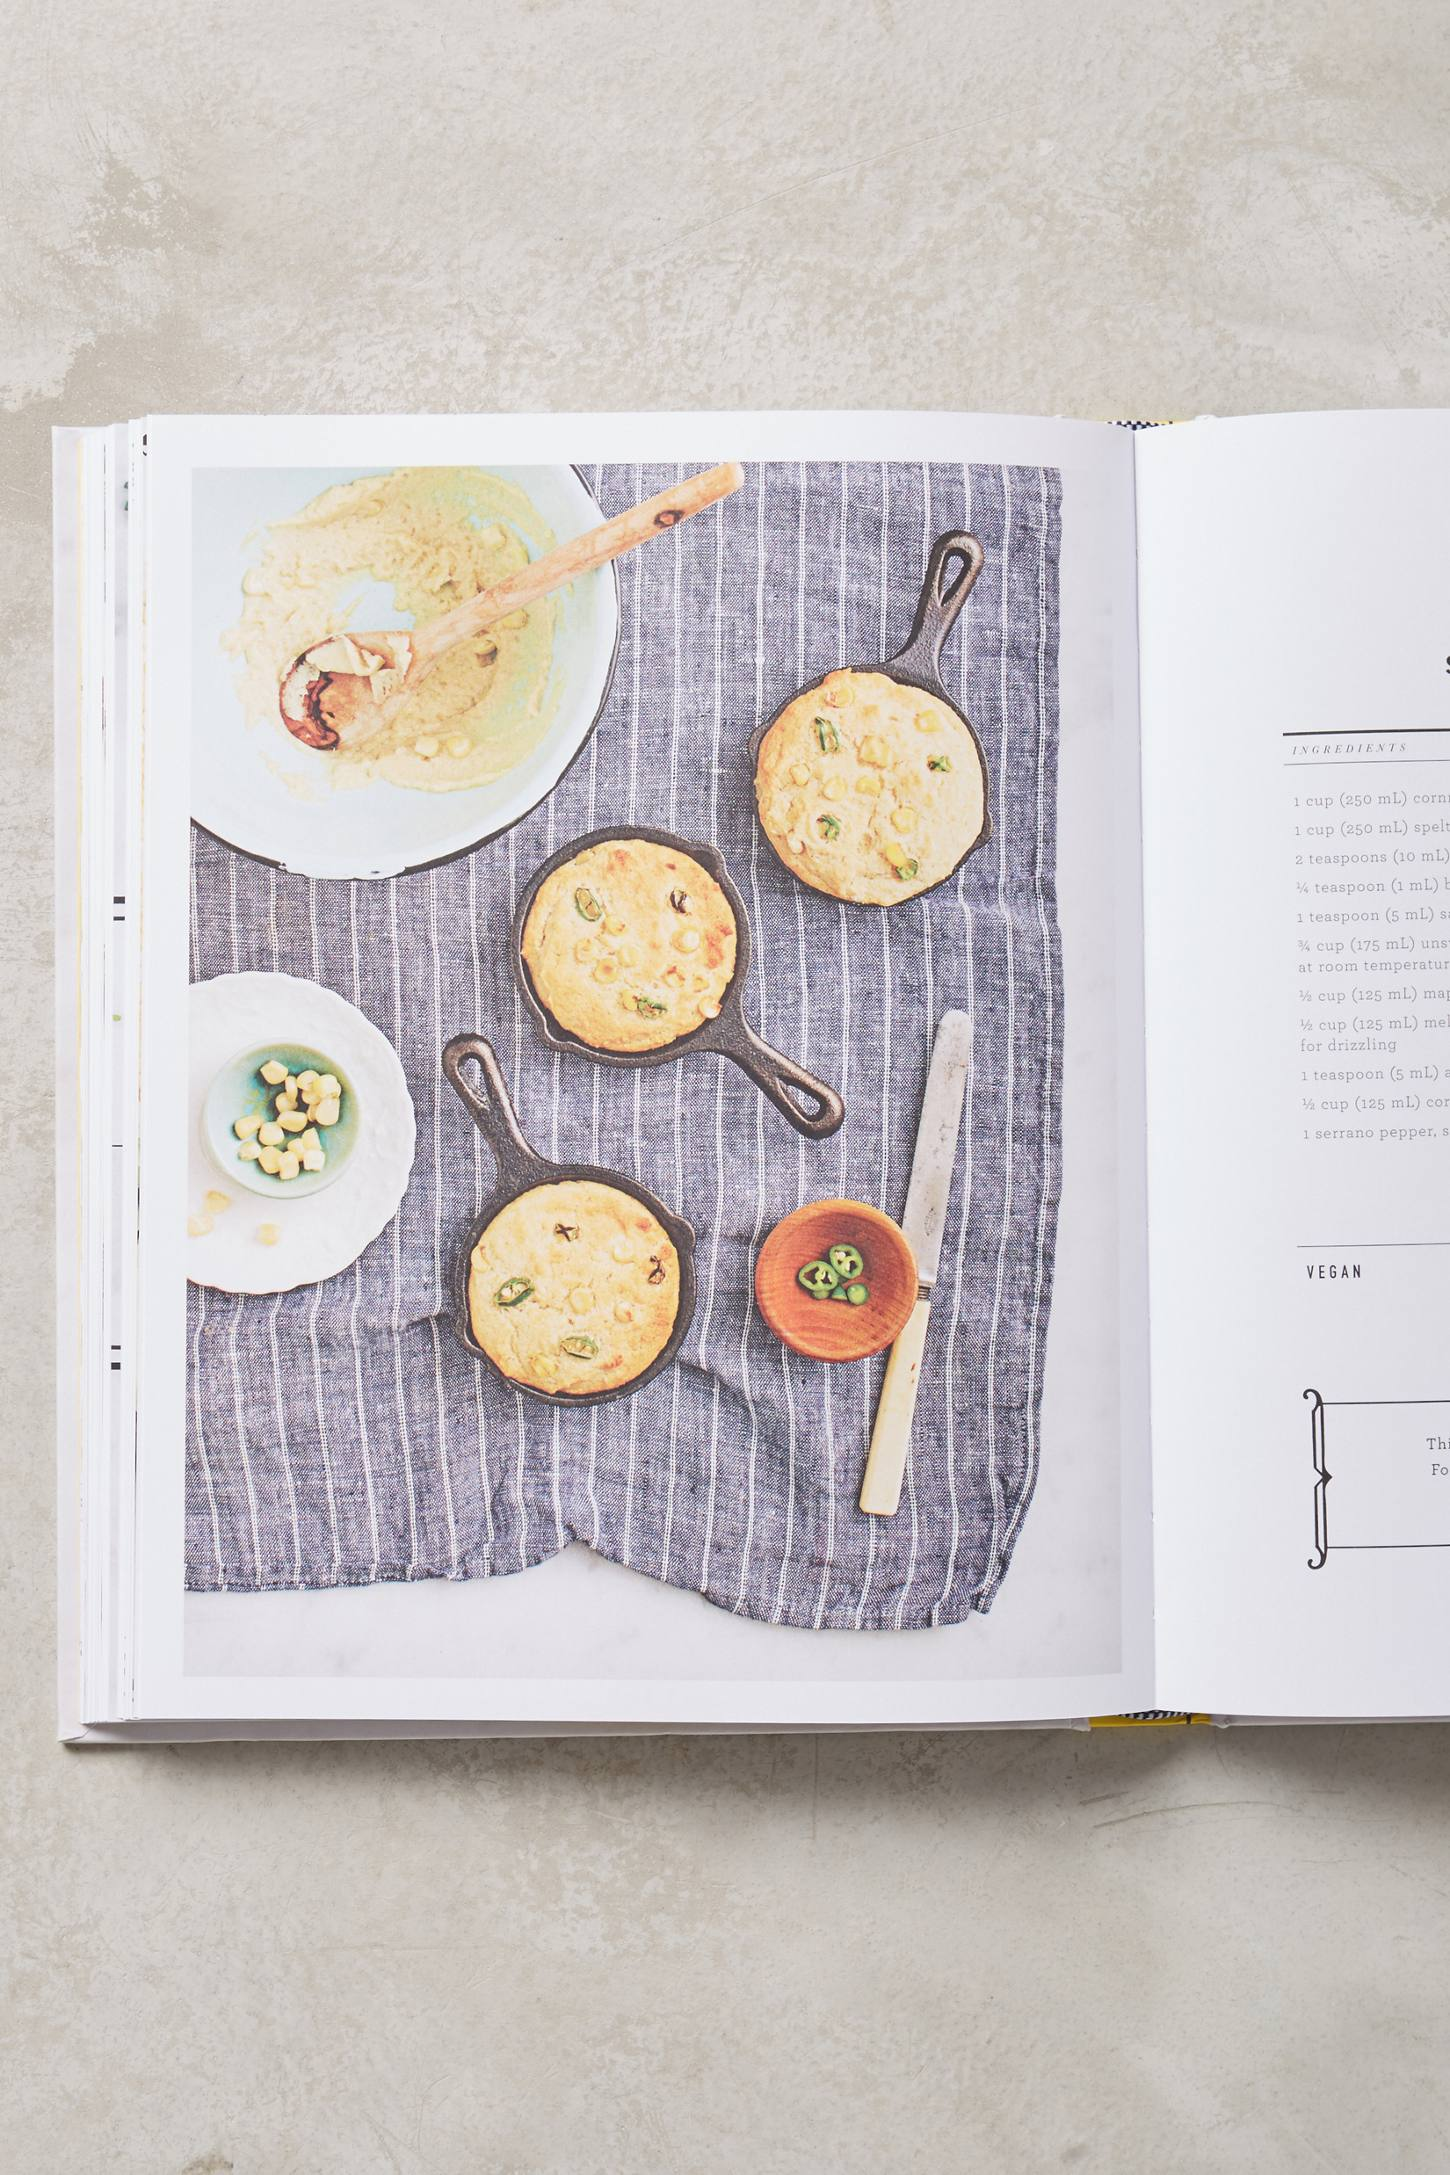 Slide View: 5: The Love And Lemons Cookbook